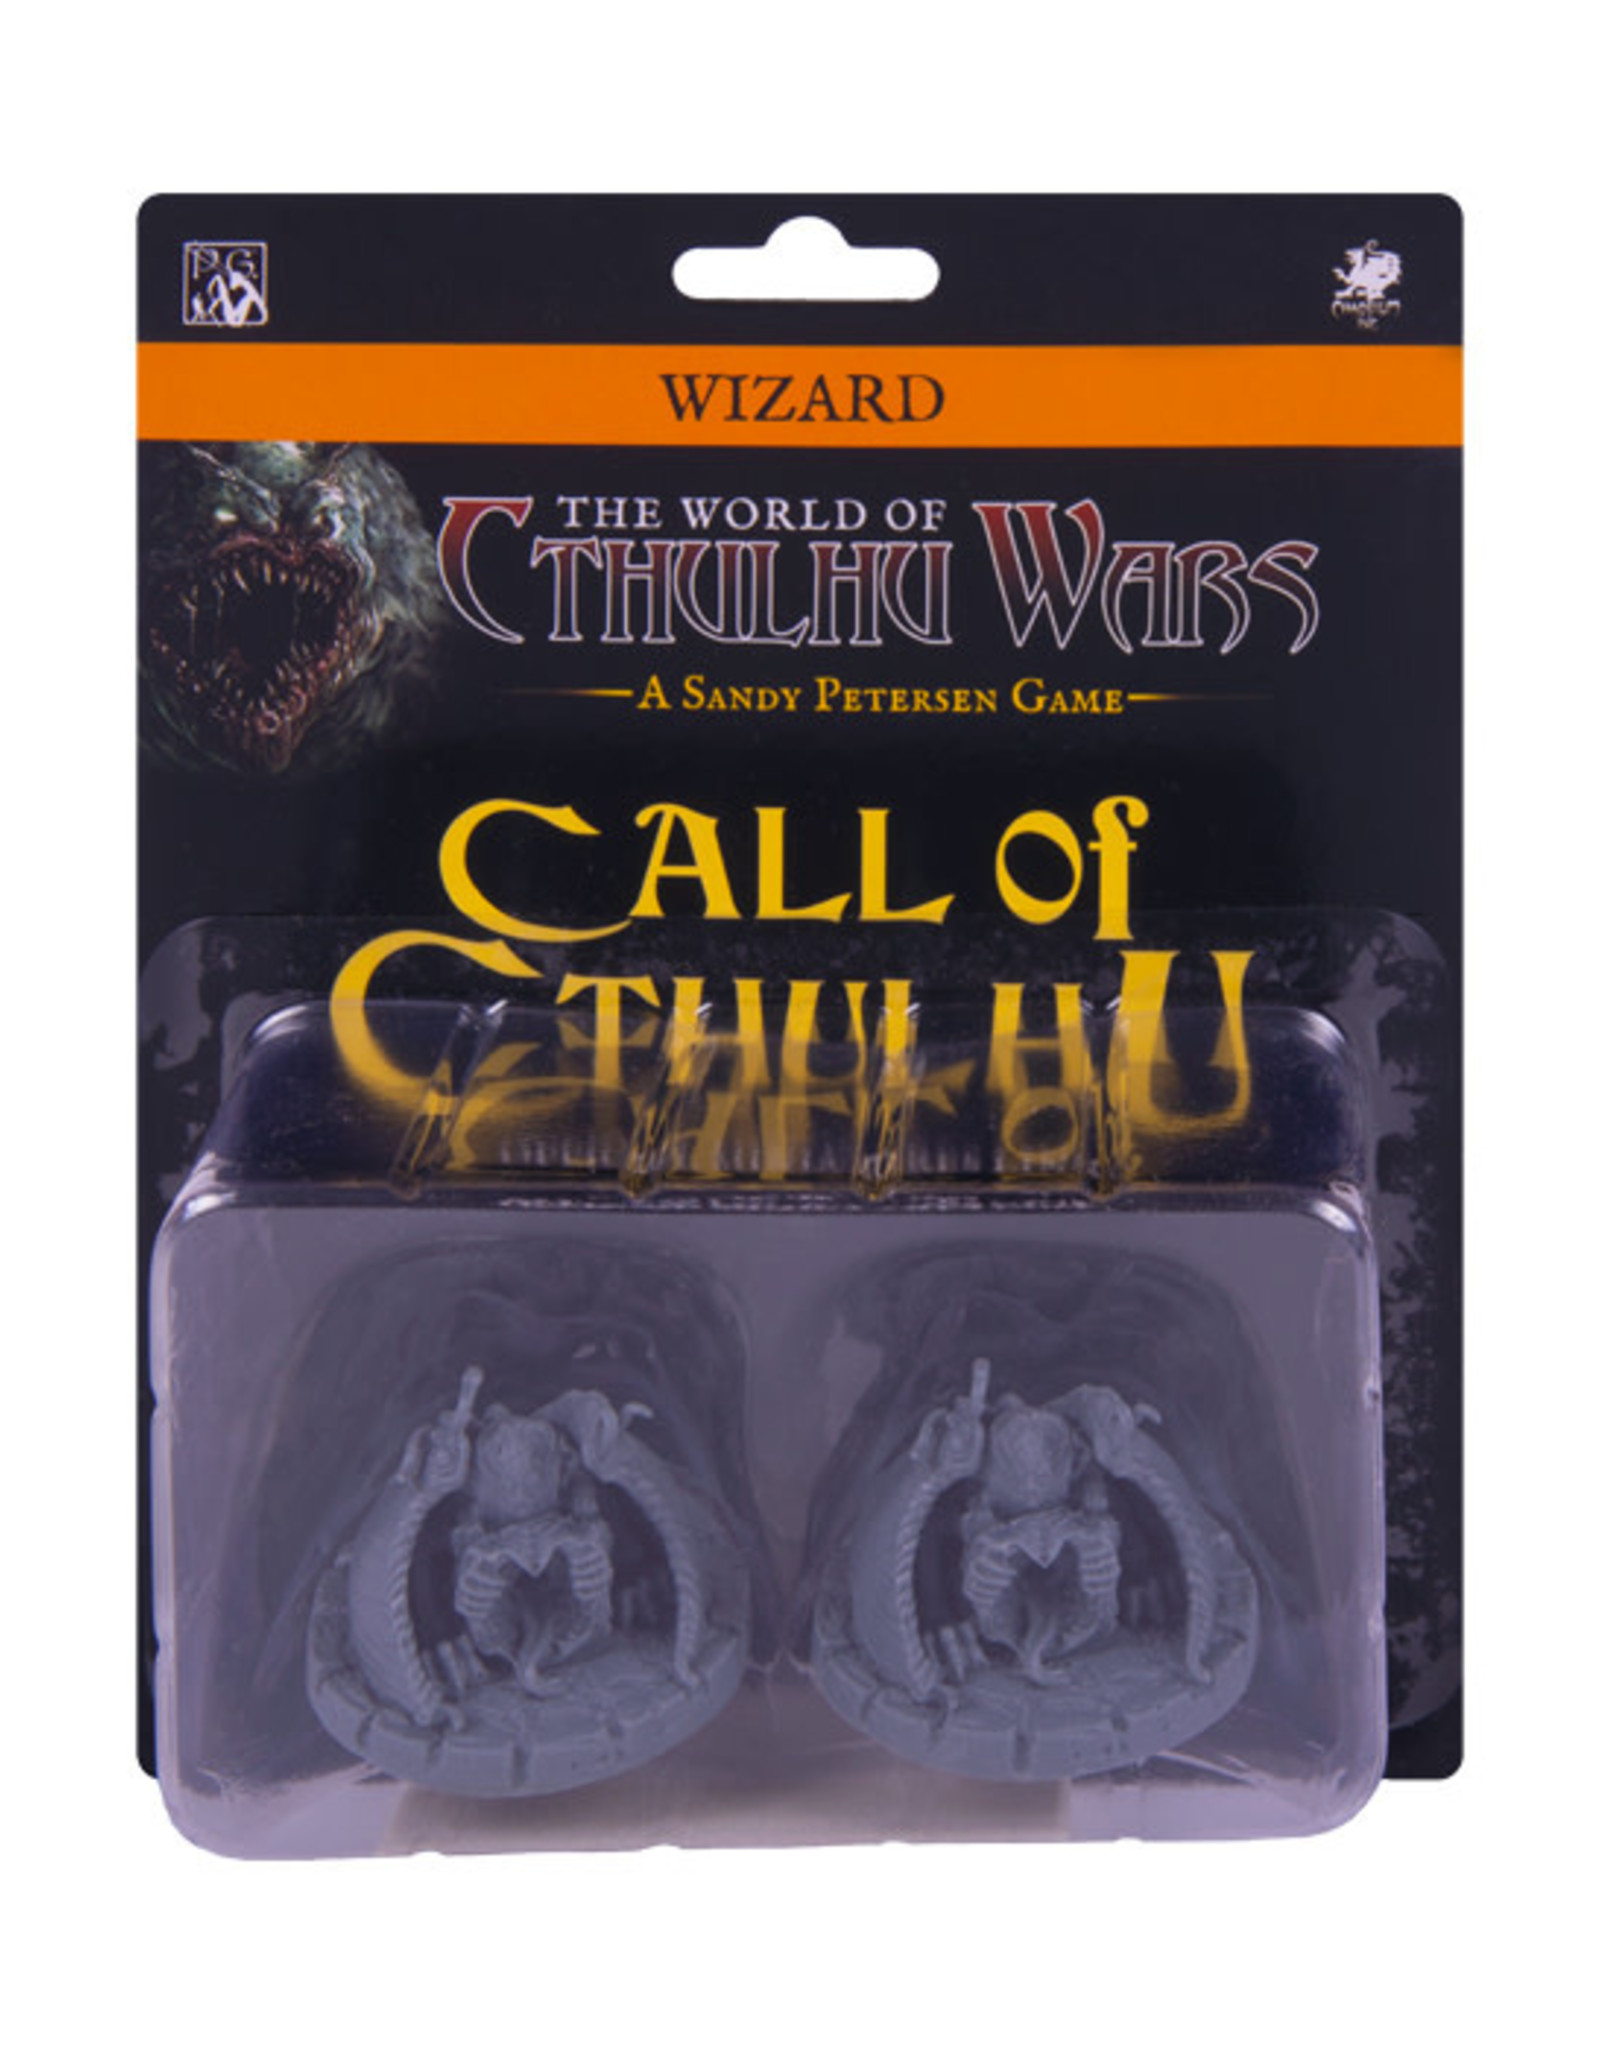 Call of Cthulhu: Miniature - Wizard